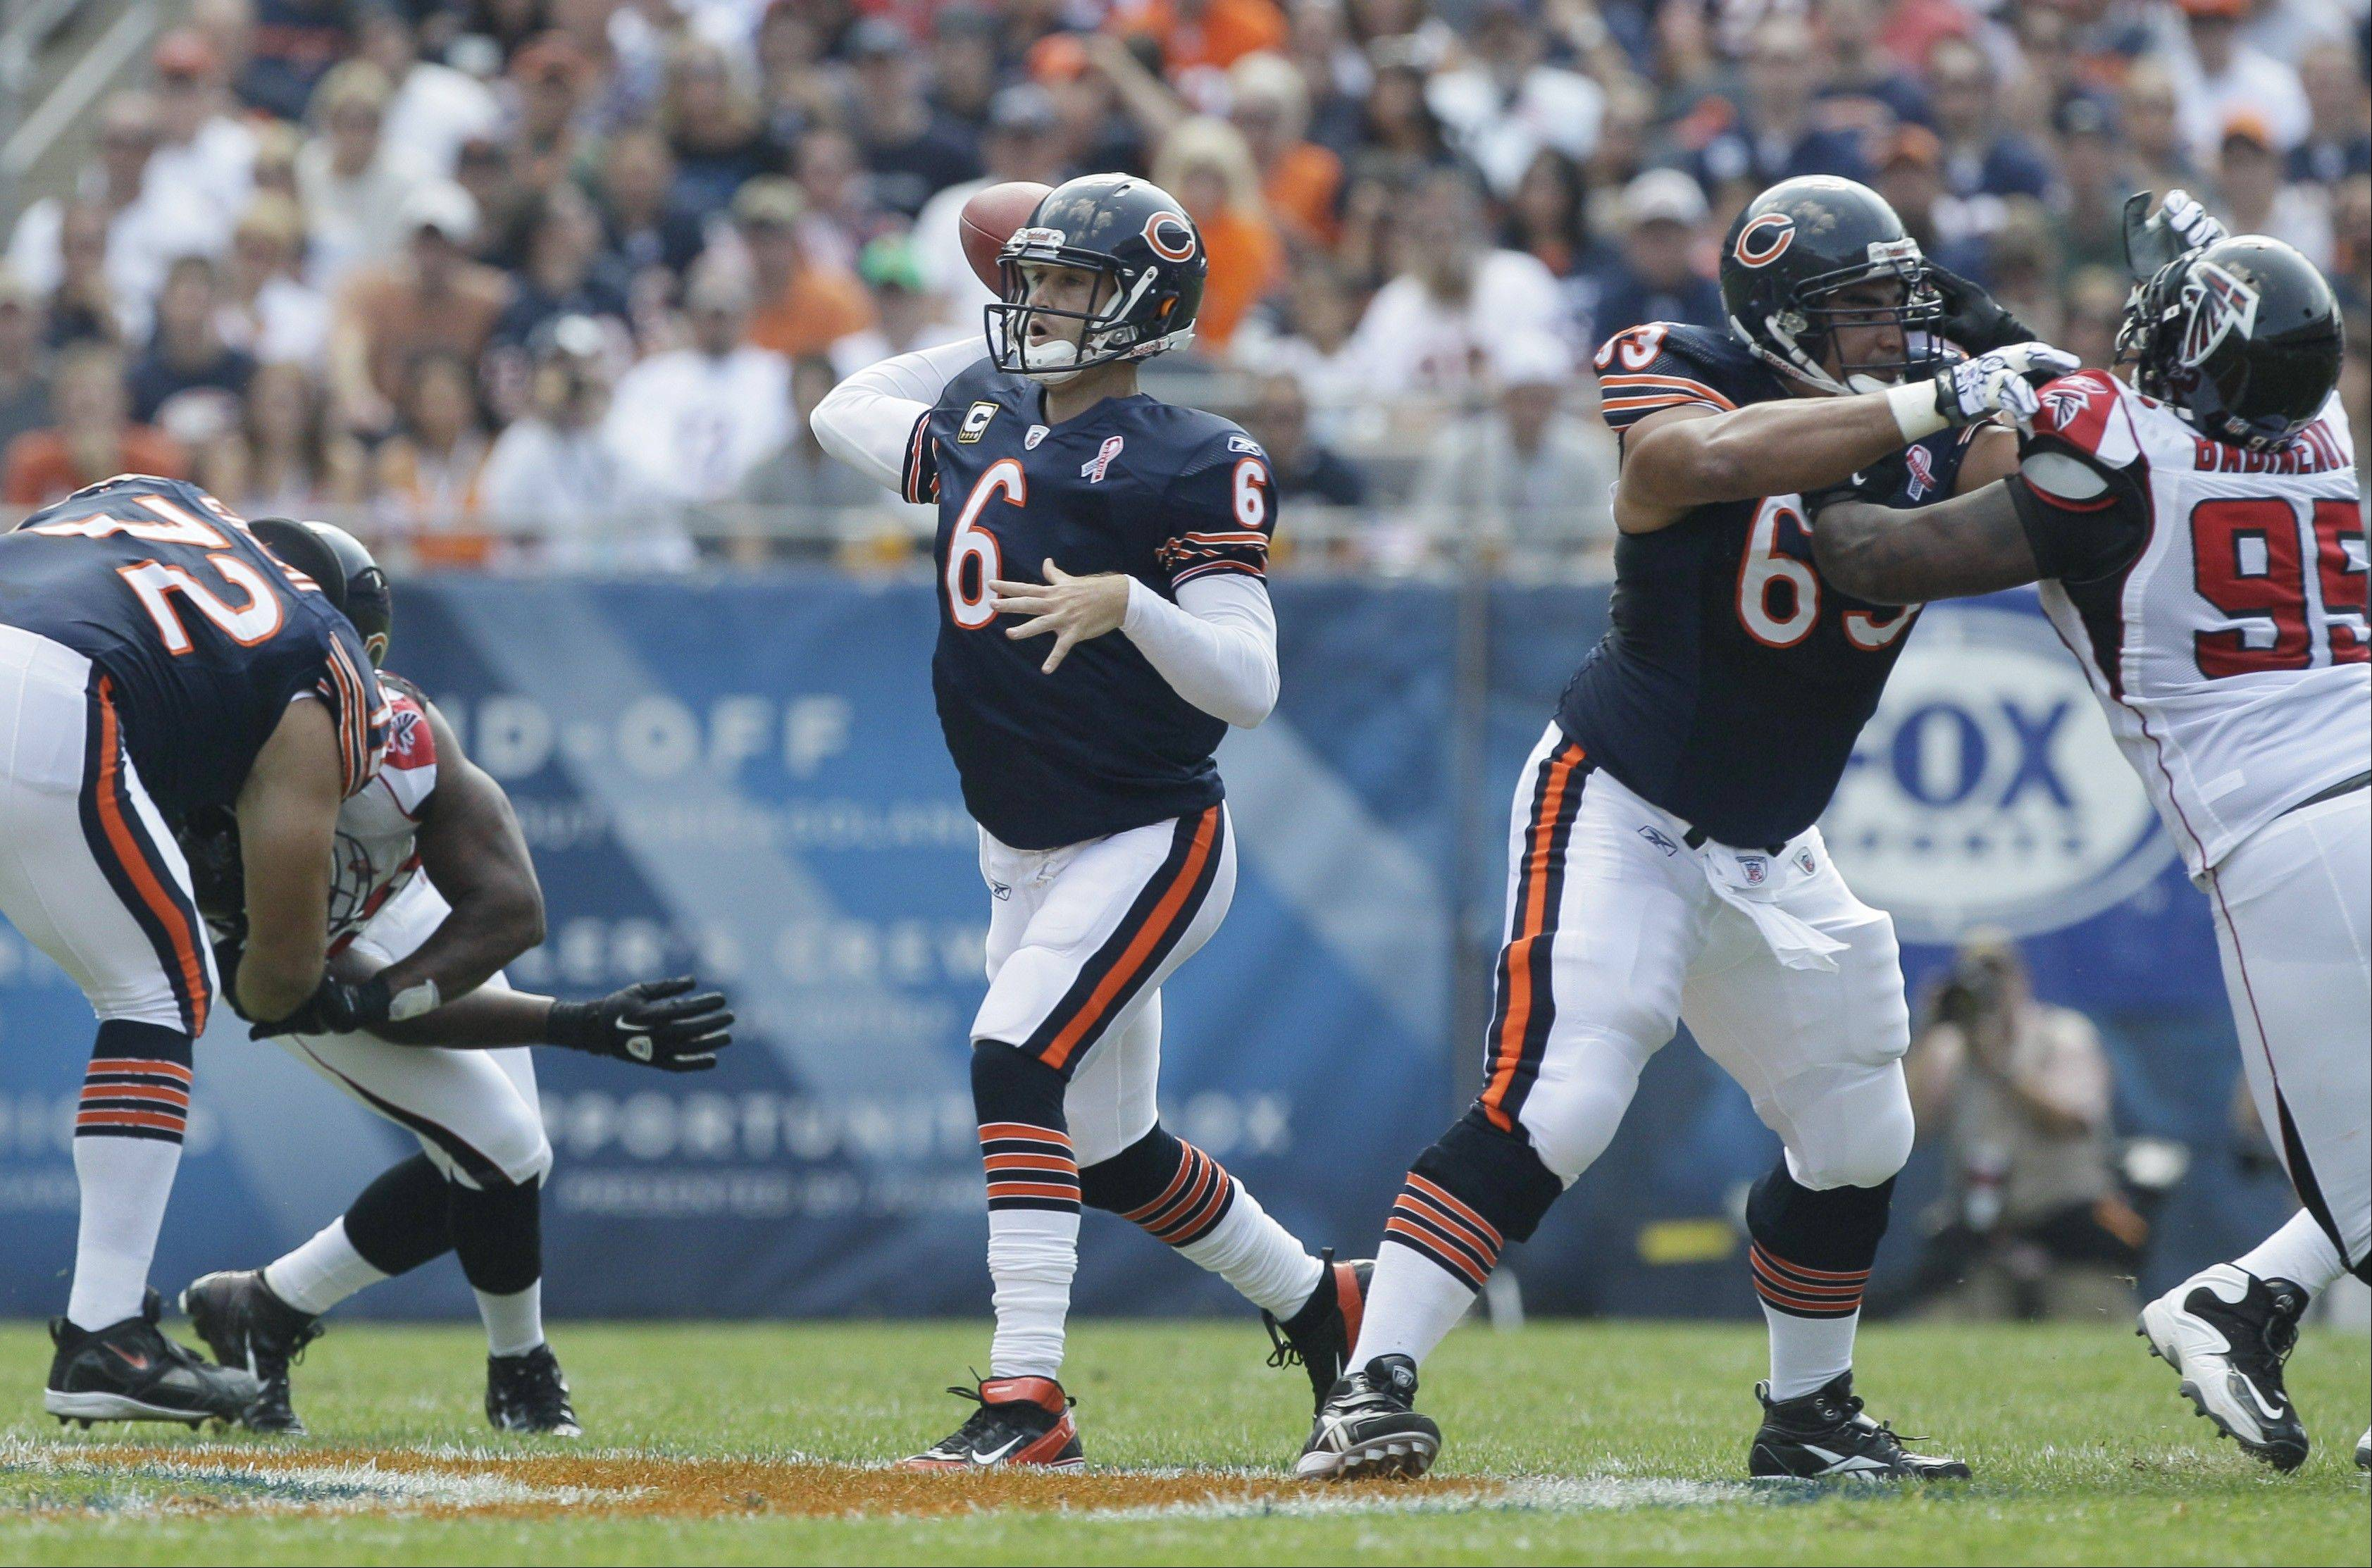 Bears quarterback Jay Cutler looks to pass in the first half Sunday against the Falcons.